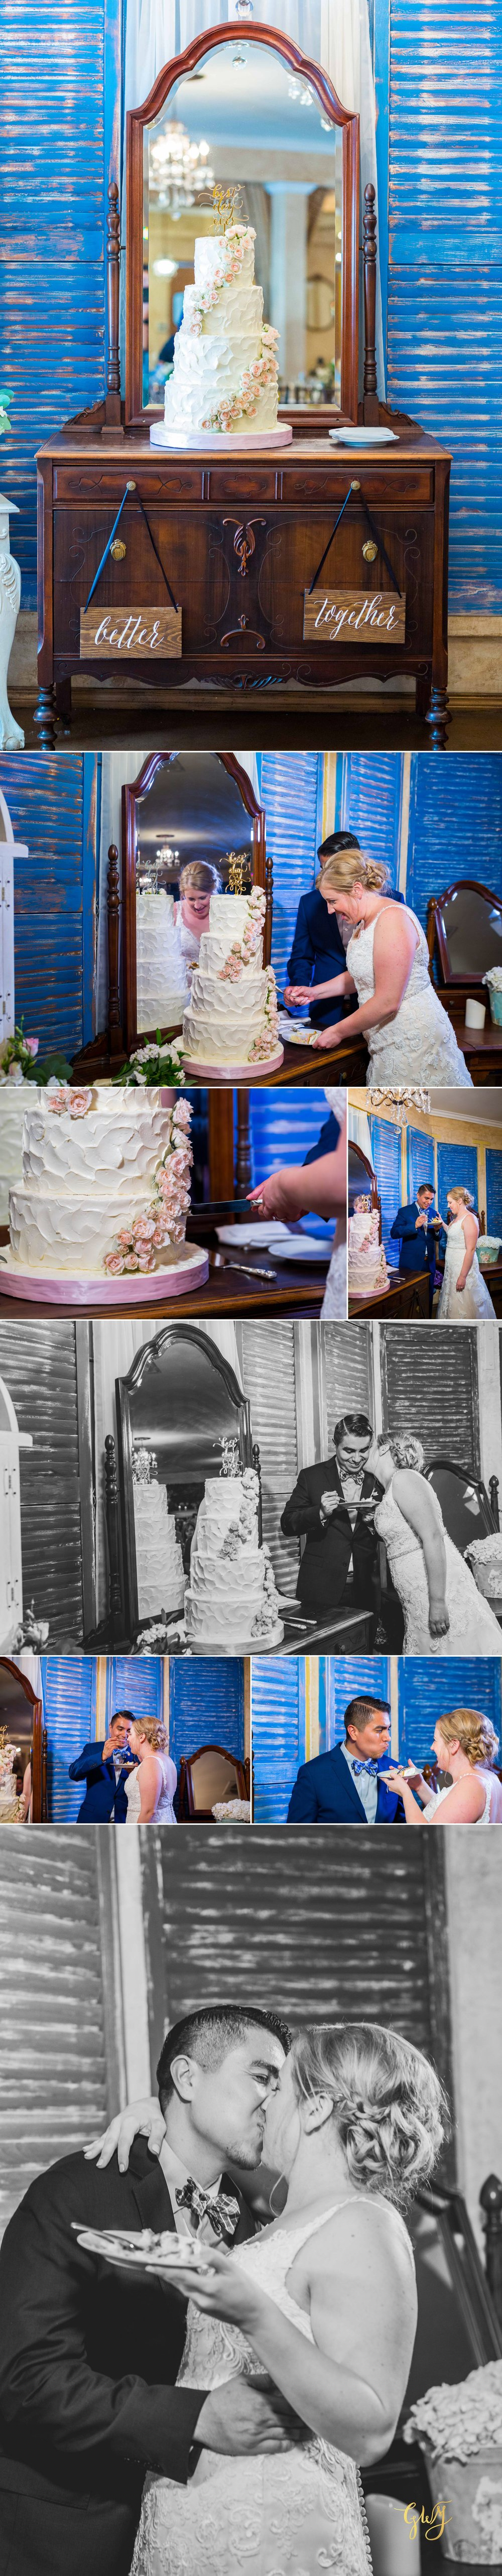 Javier + Kari Avenue of the Arts First Look Vintage Rose Wedding Ceremony Reception by Glass Woods Media 25.jpg